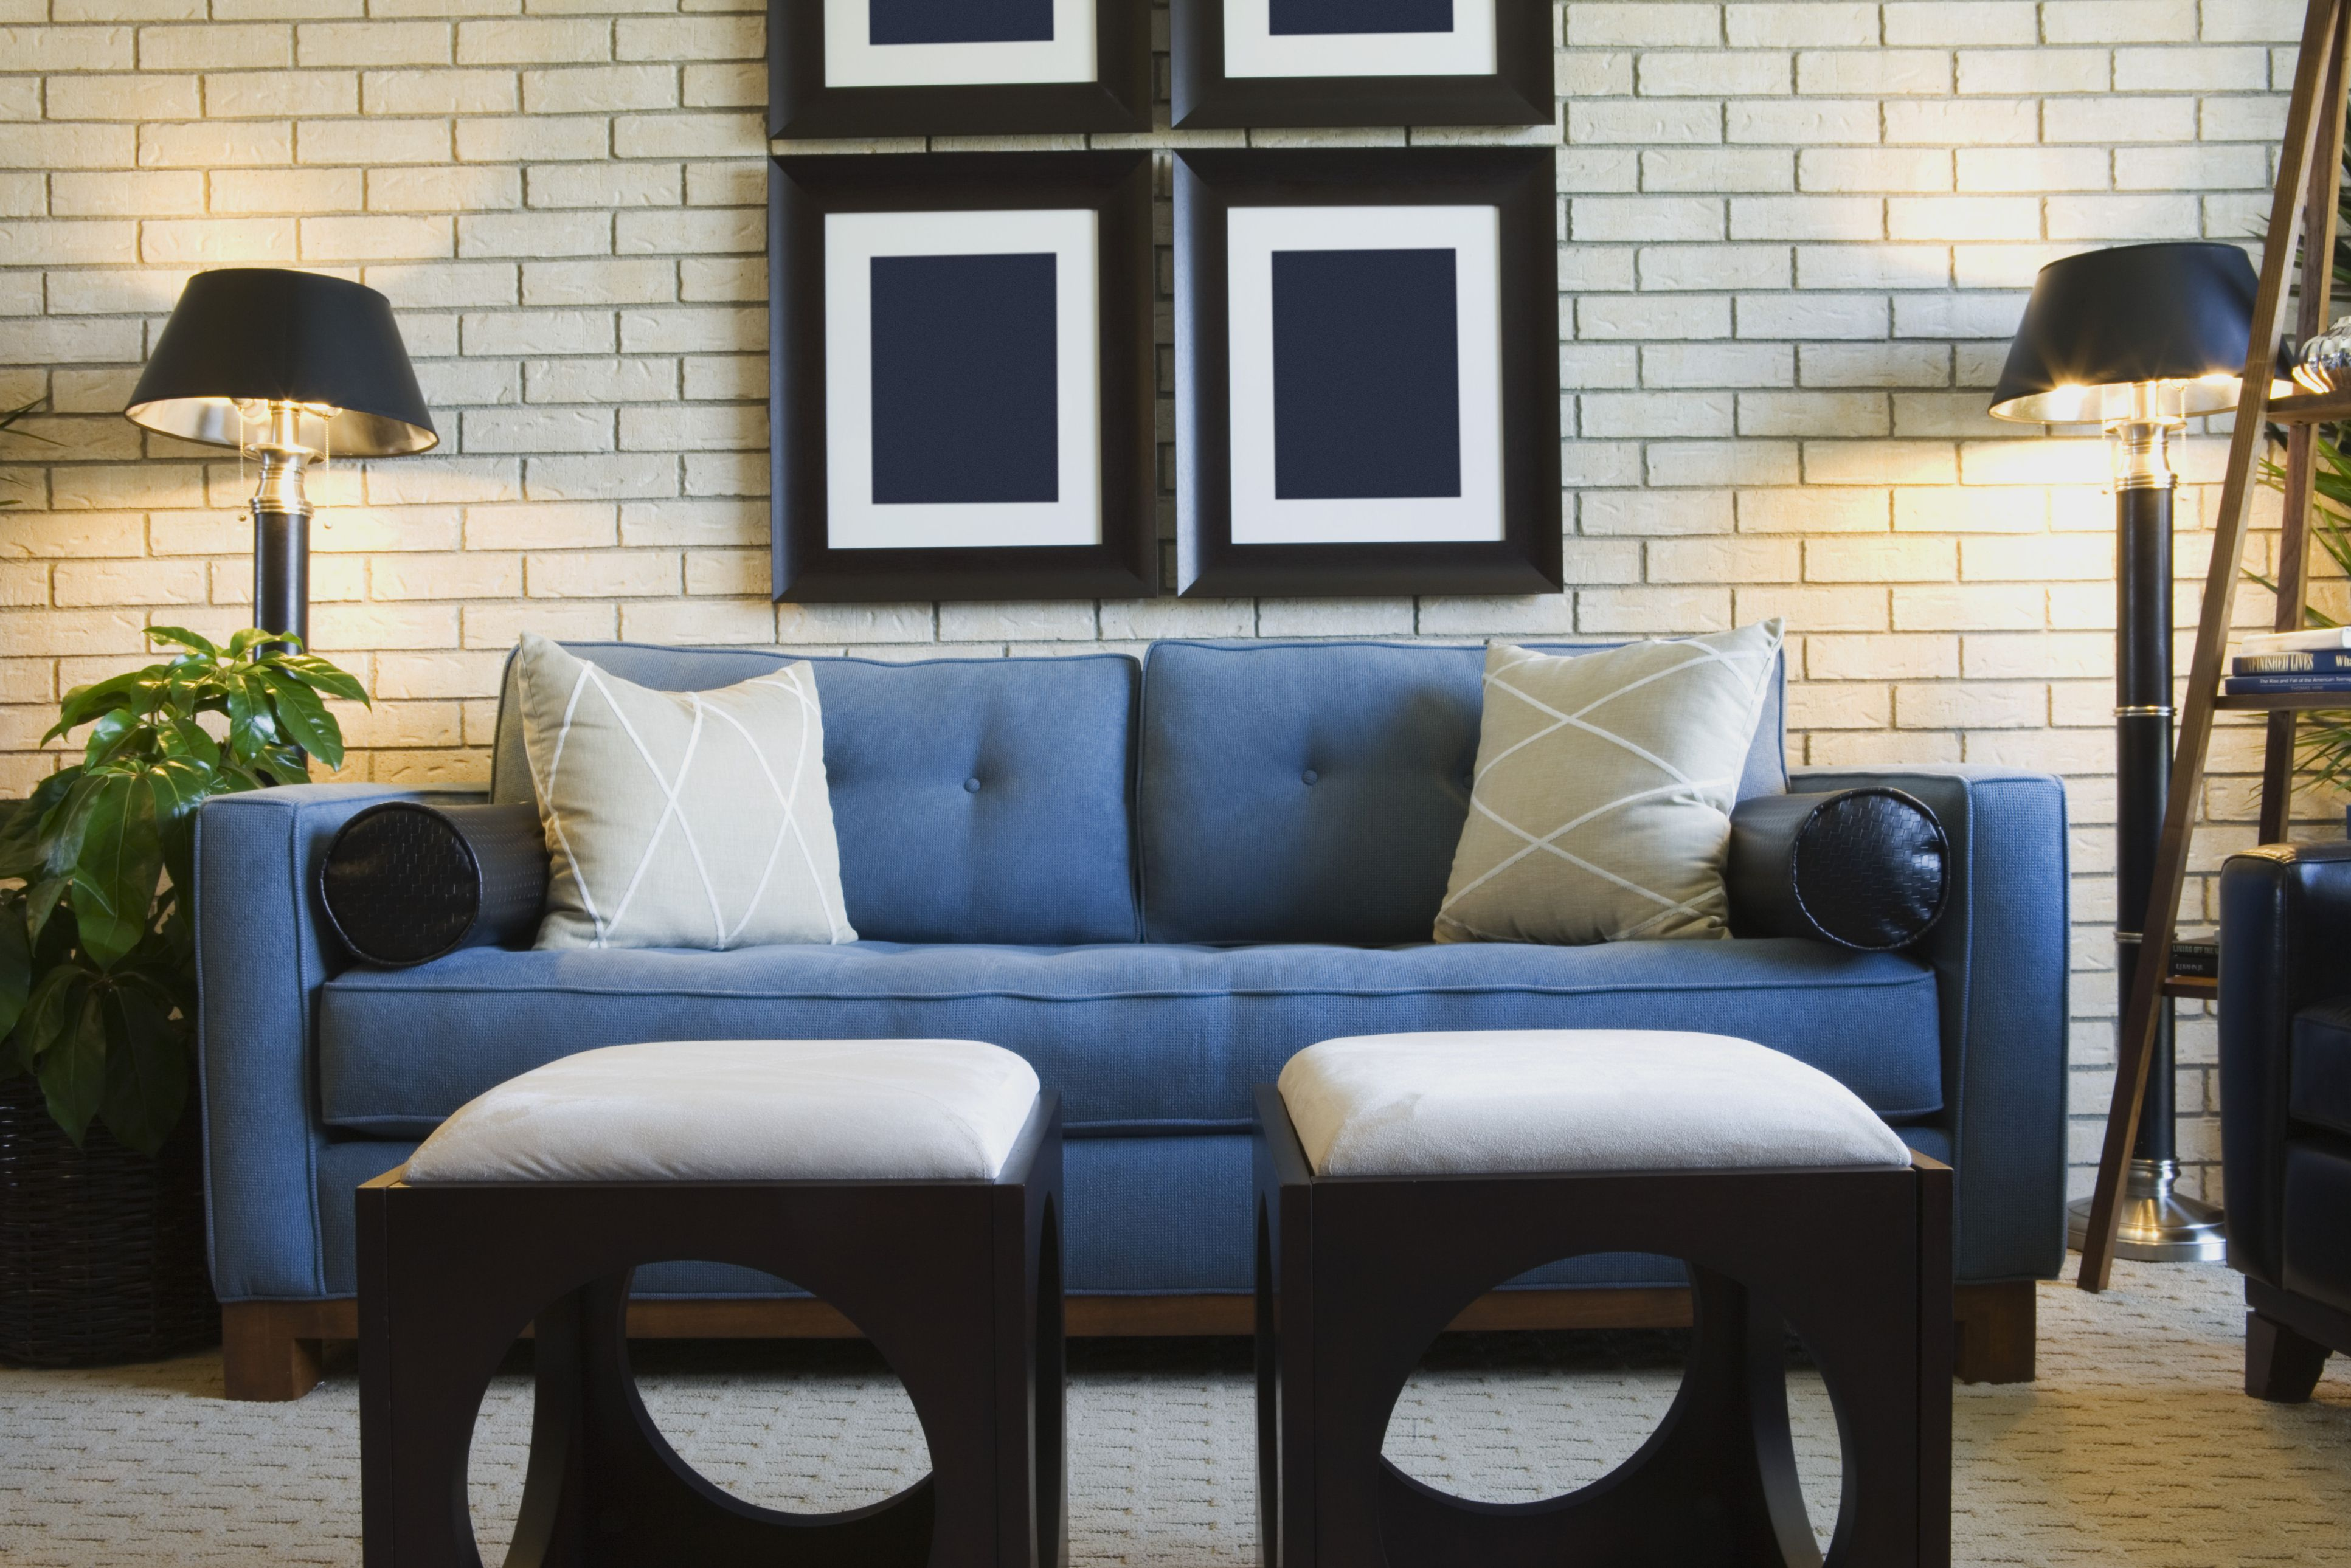 Don't Fall Prey to These Small Space Mistakes